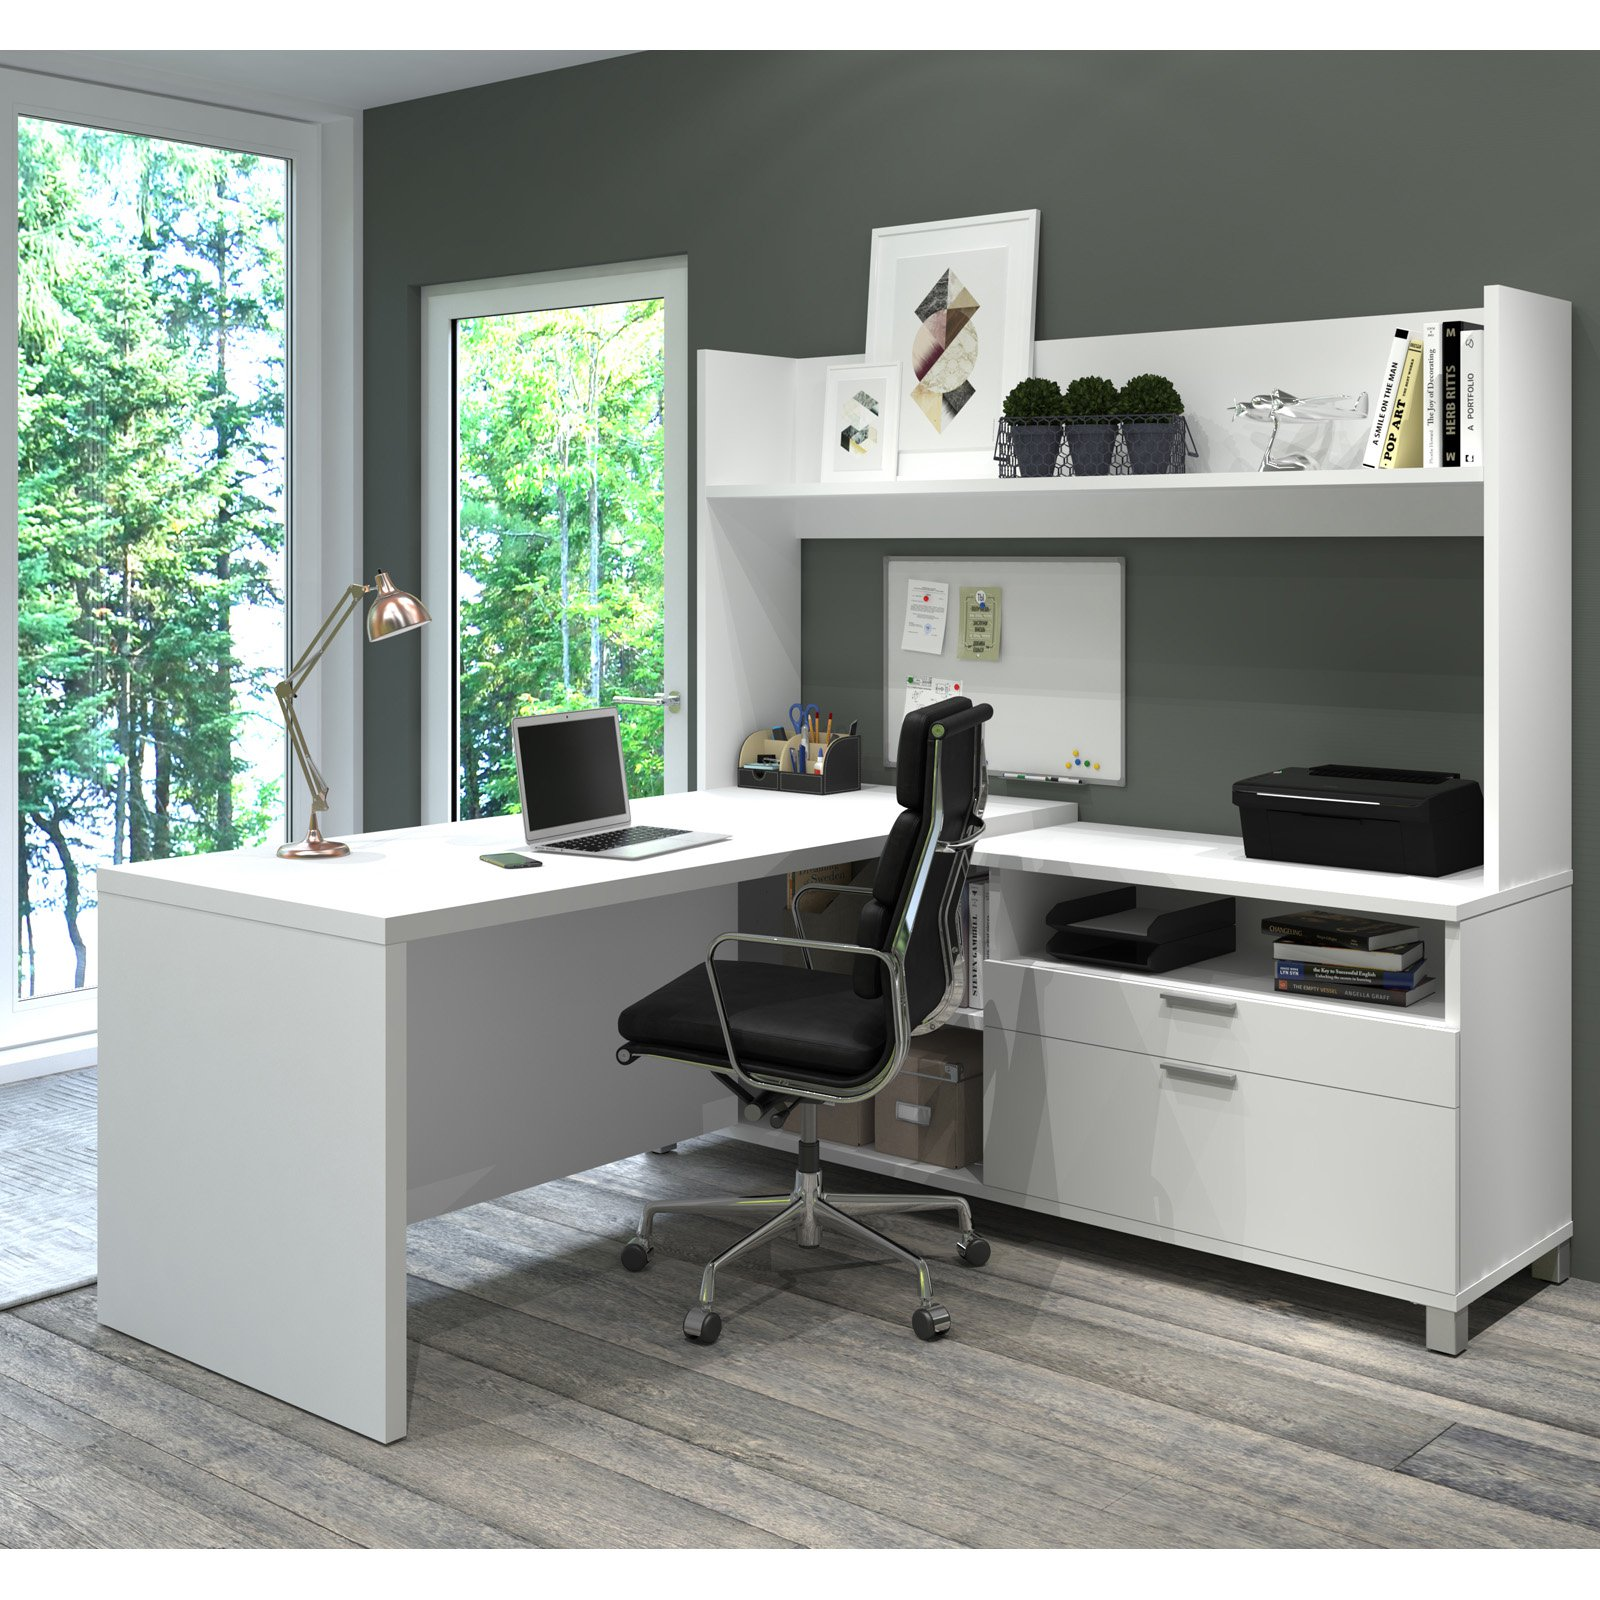 Pro-Linea L-Desk with Open hutch in White